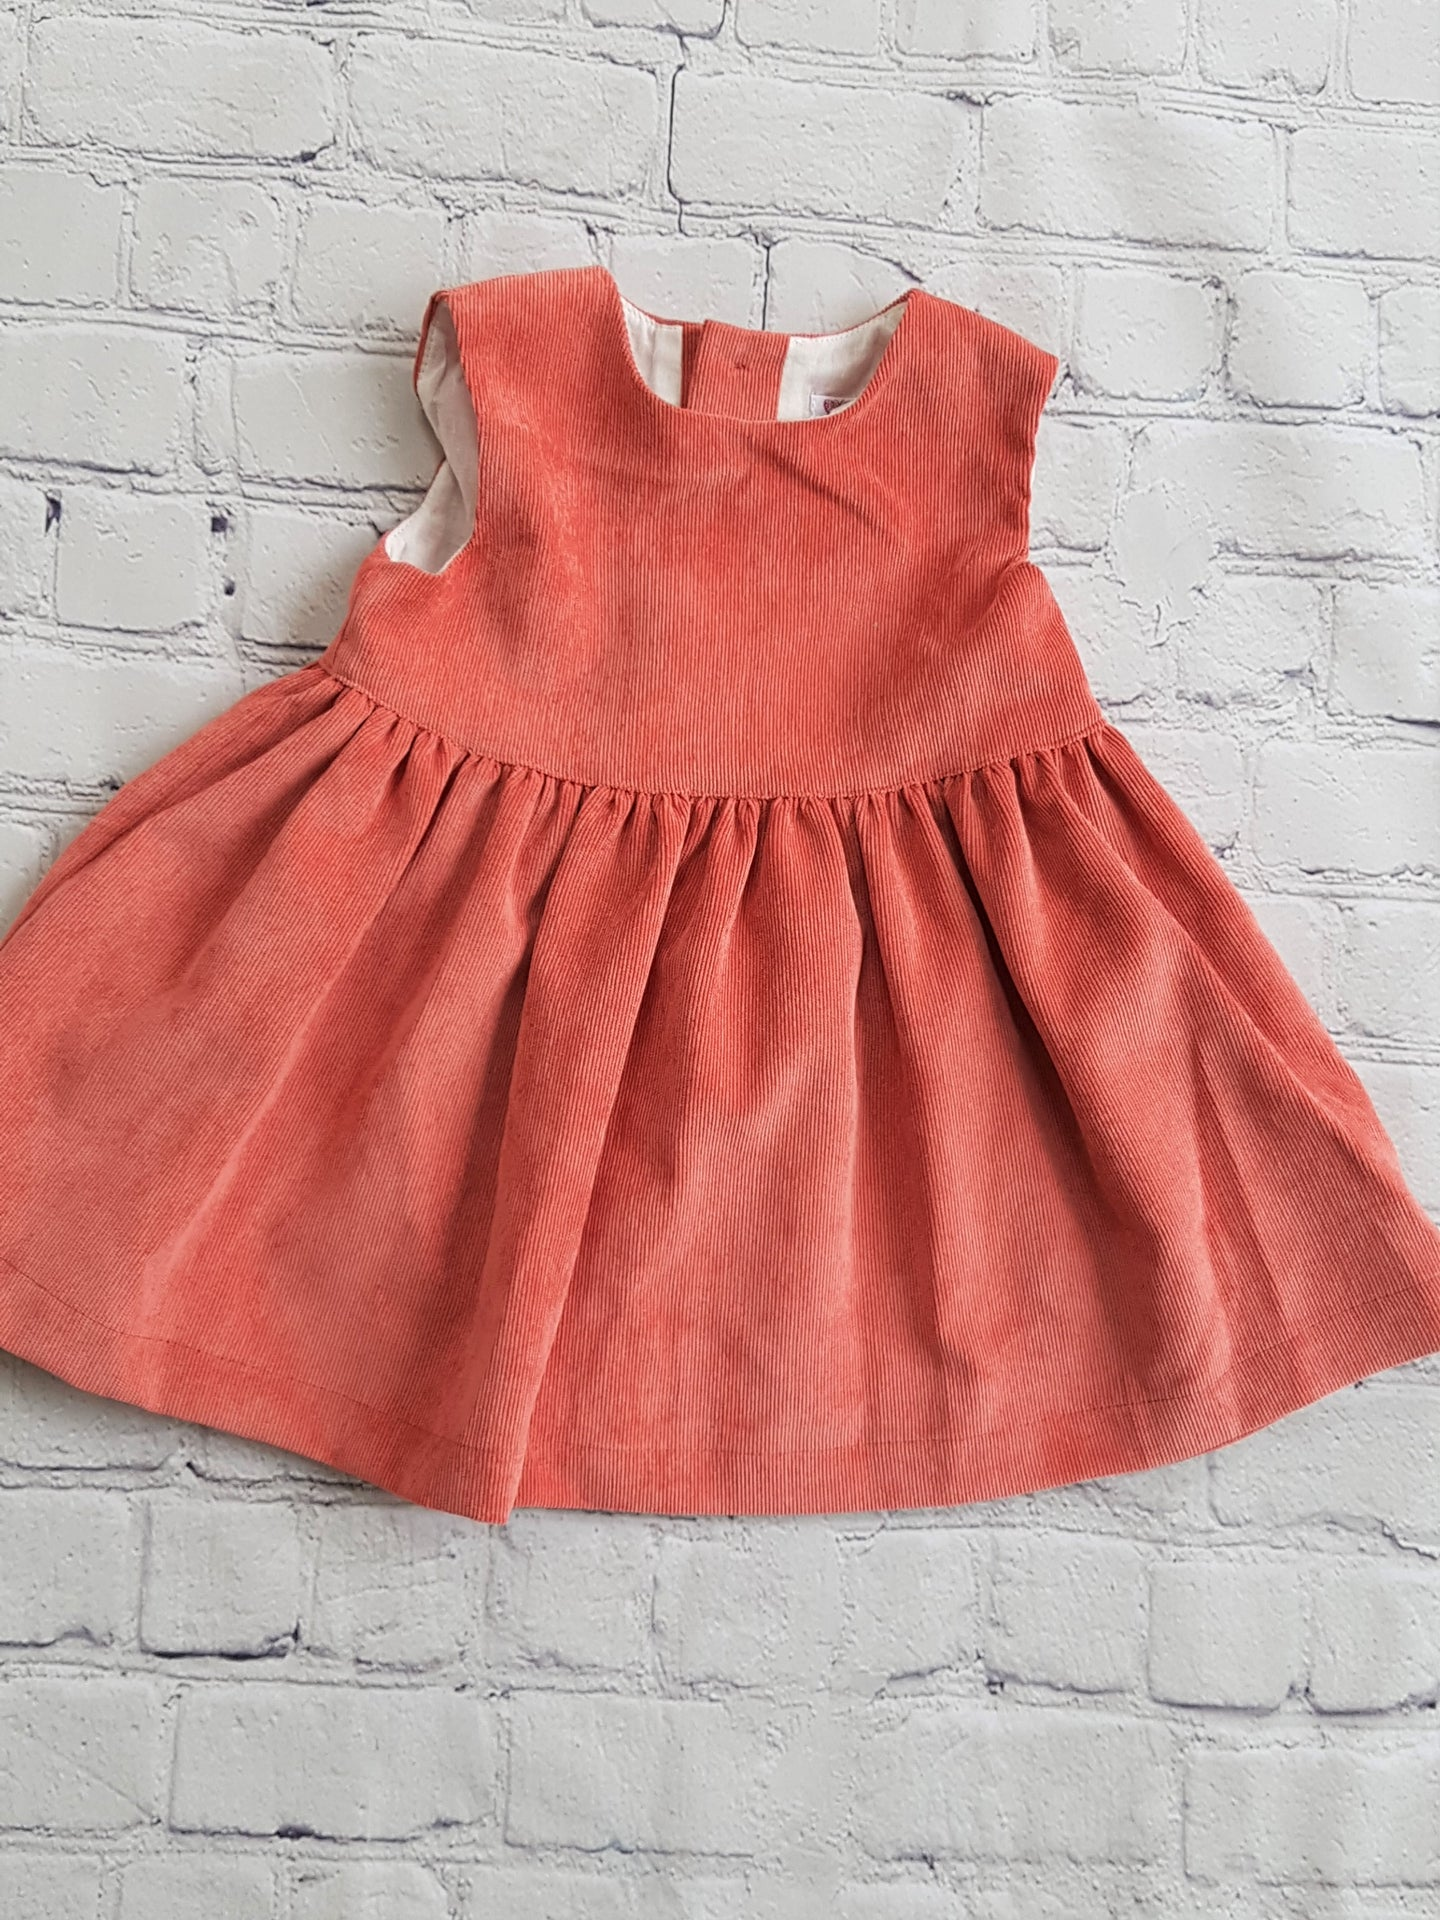 AMIA outlet dress baby - FAMILY AFFAIRE